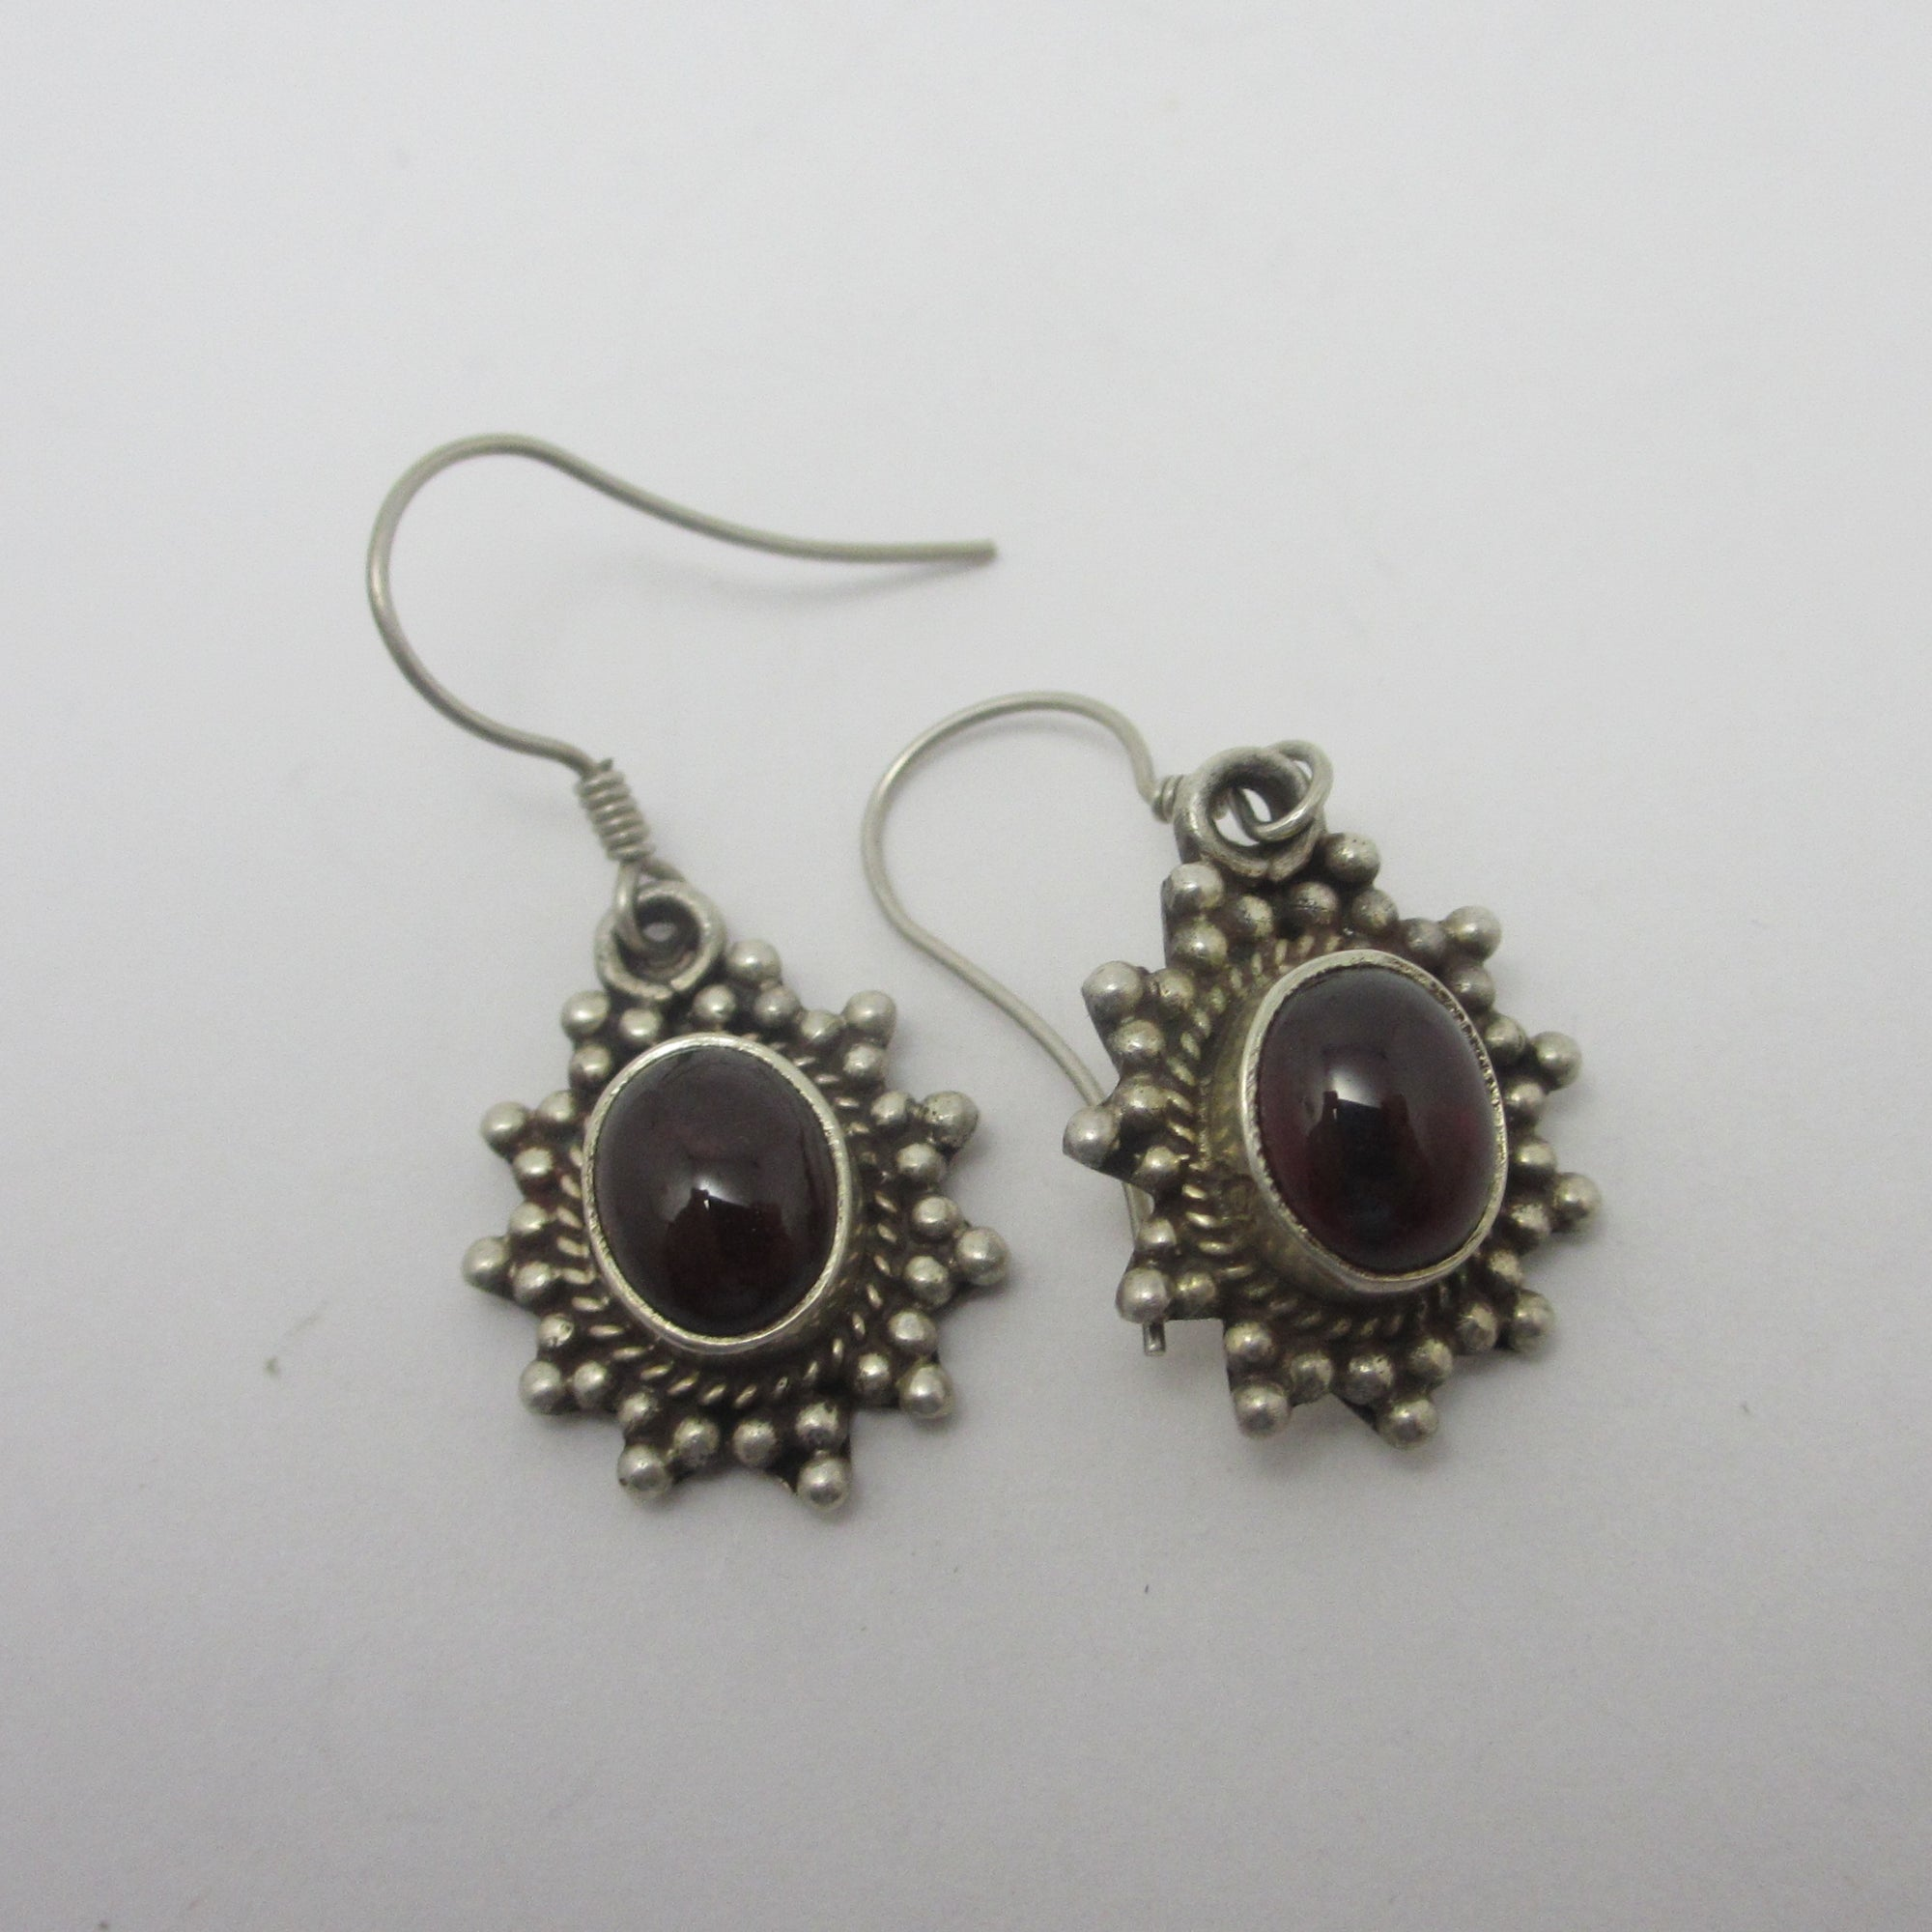 Cabochon Garnet Sterling Silver Dangling Pendant Earrings Vintage c1980